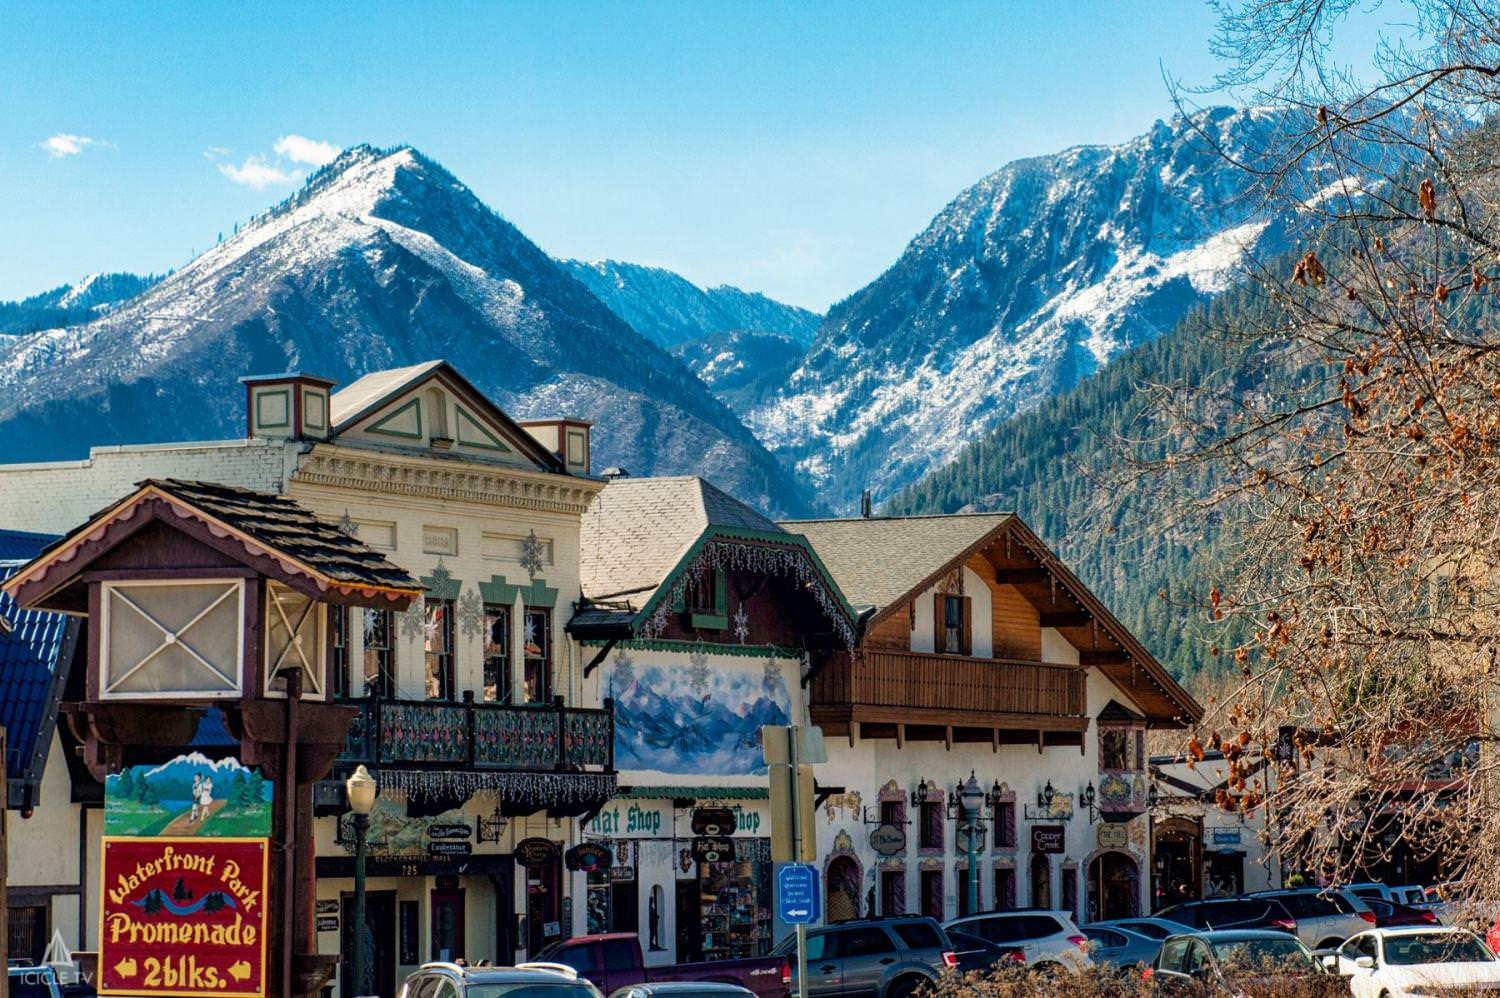 Exciting things to do in Leavenworth, Washington